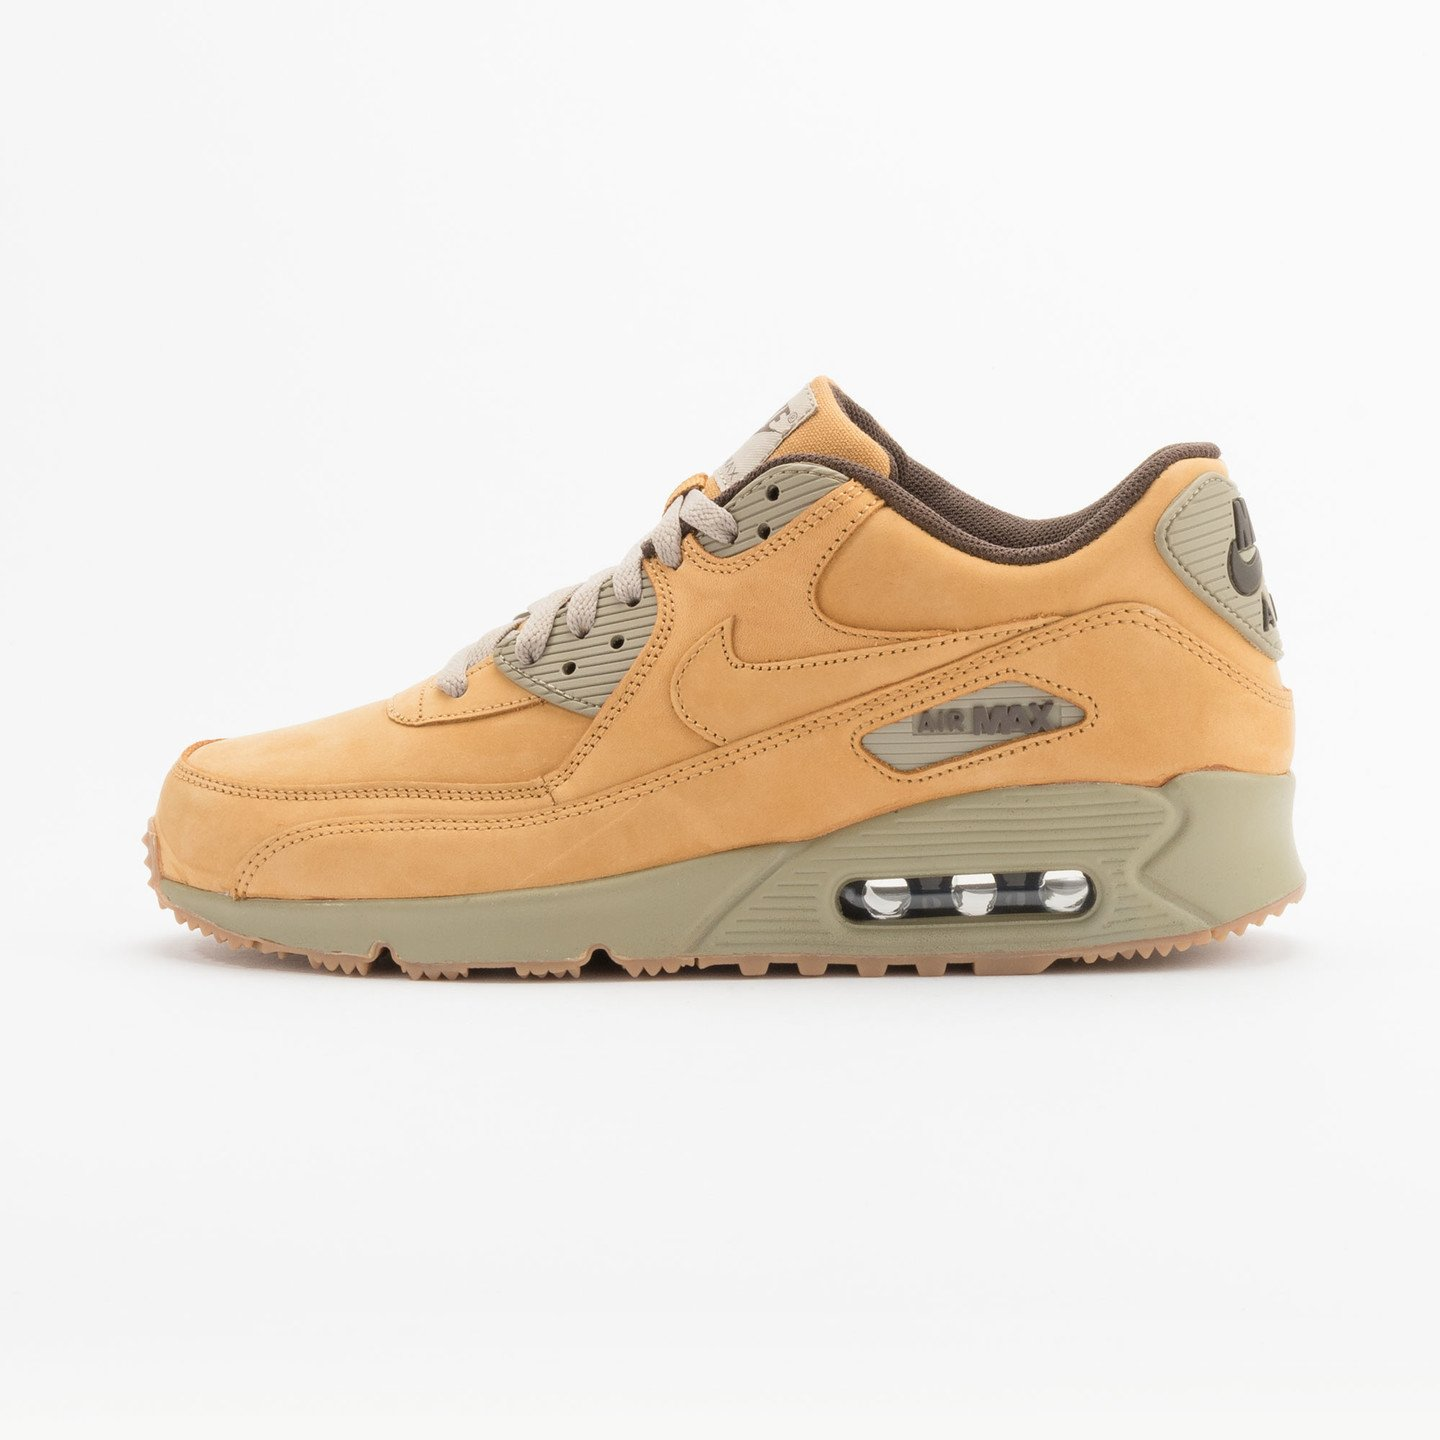 Nike Air Max 90 Winter Premium Bronze / Baroque Brown 683282-700-45